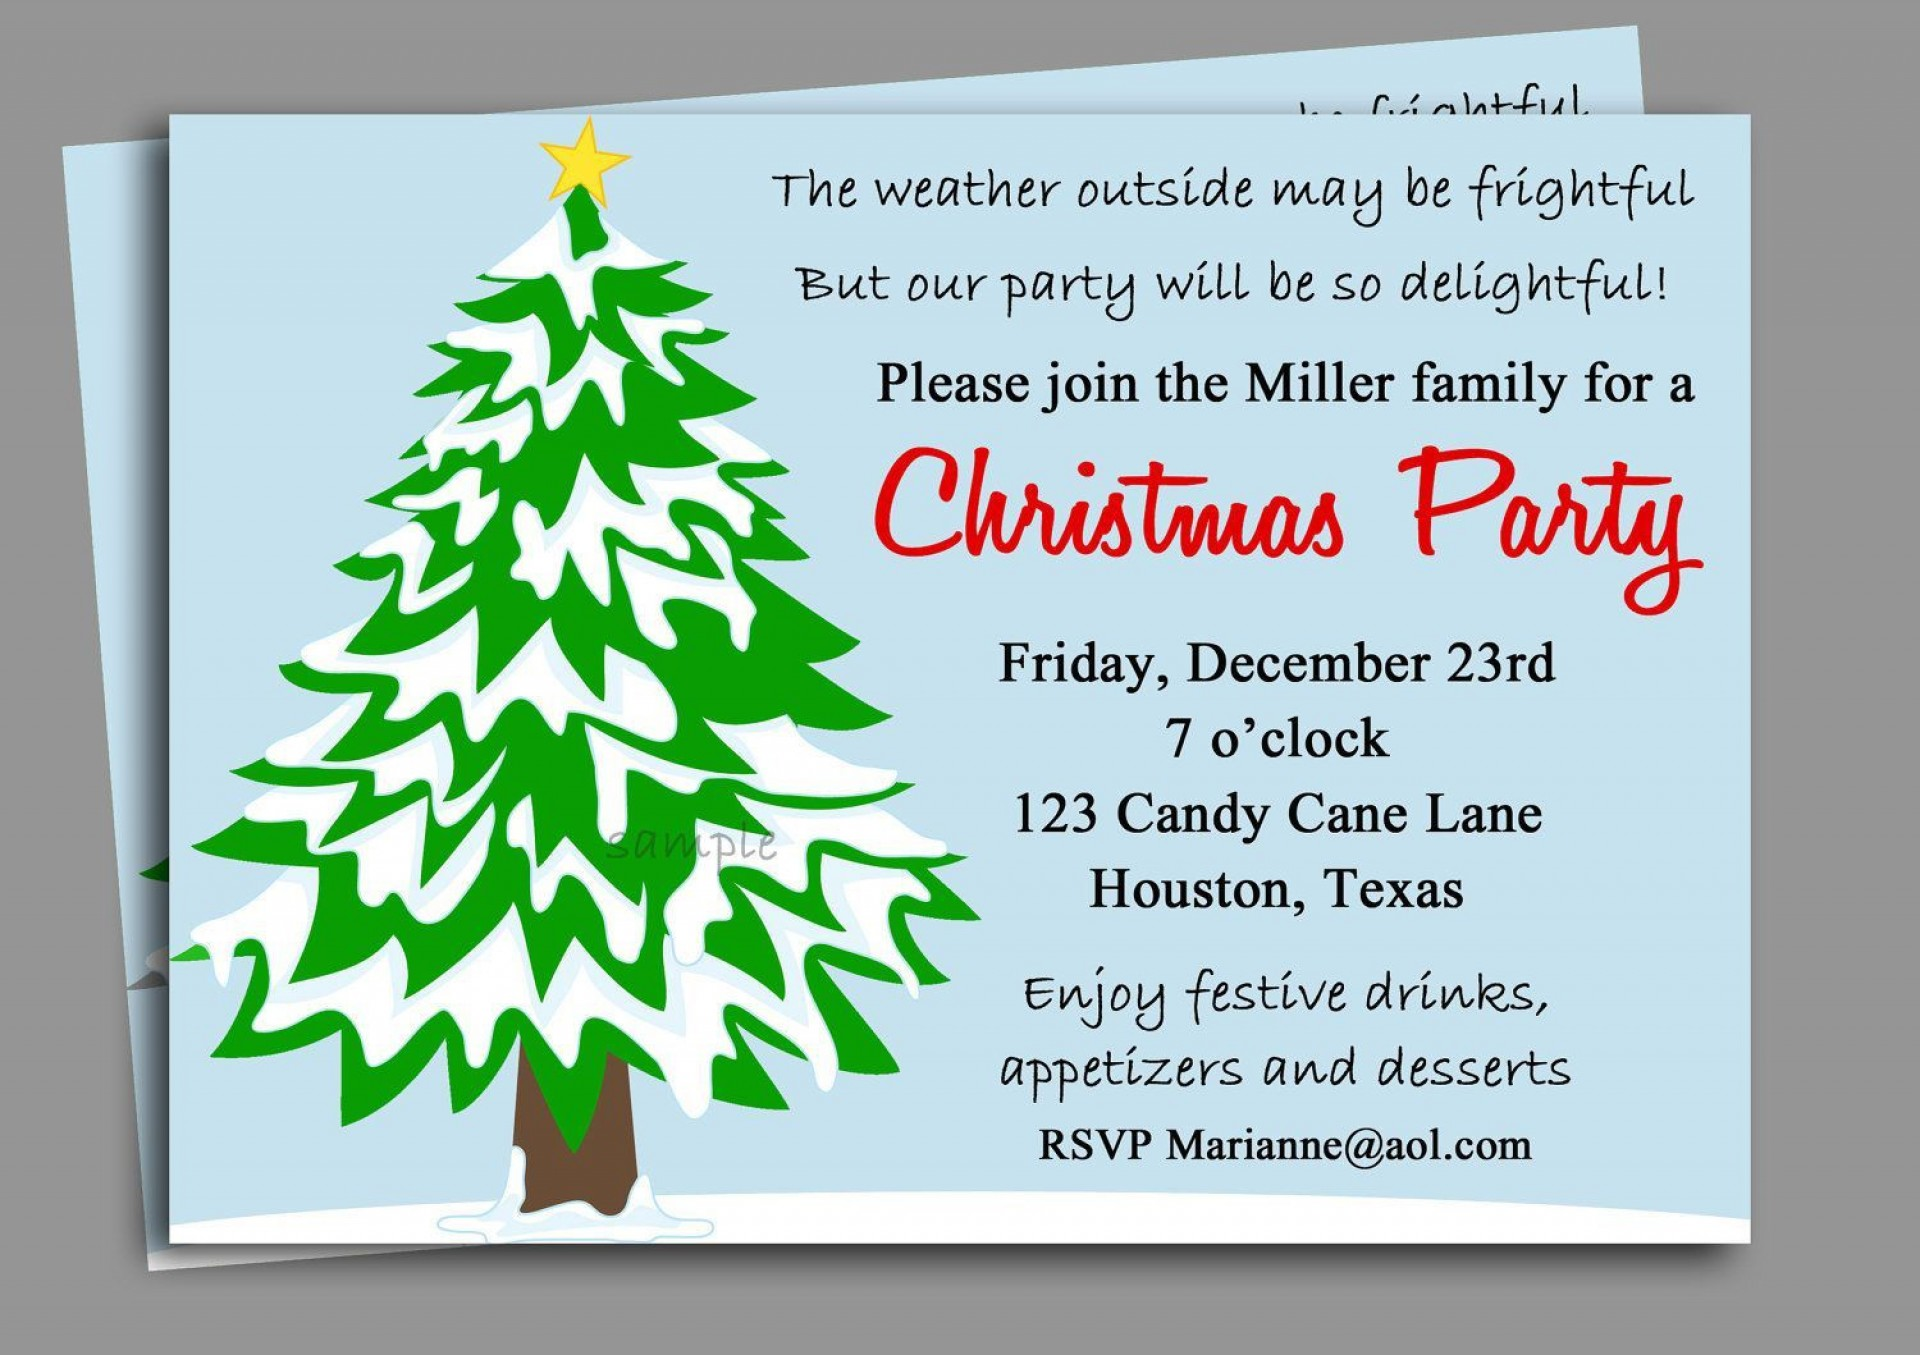 008 Striking Office Christma Party Invitation Wording Sample Highest Quality  Holiday Example1920